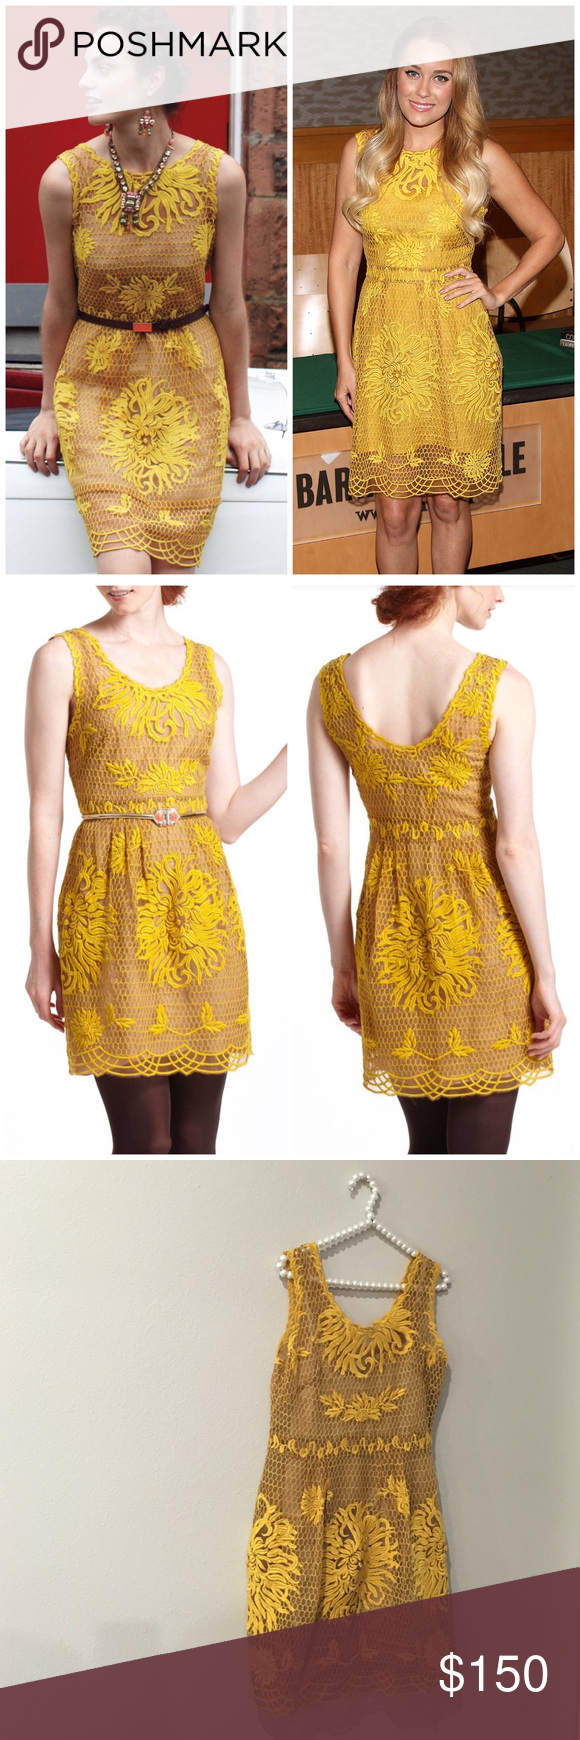 0cc626267e3e Yoana Baraschi Anthropologie Honeycomb Dress Absolutely STUNNING and in  beautiful condition! As seen on Lauren Conrad. Yellow-gold honeycomb +  floral lace.